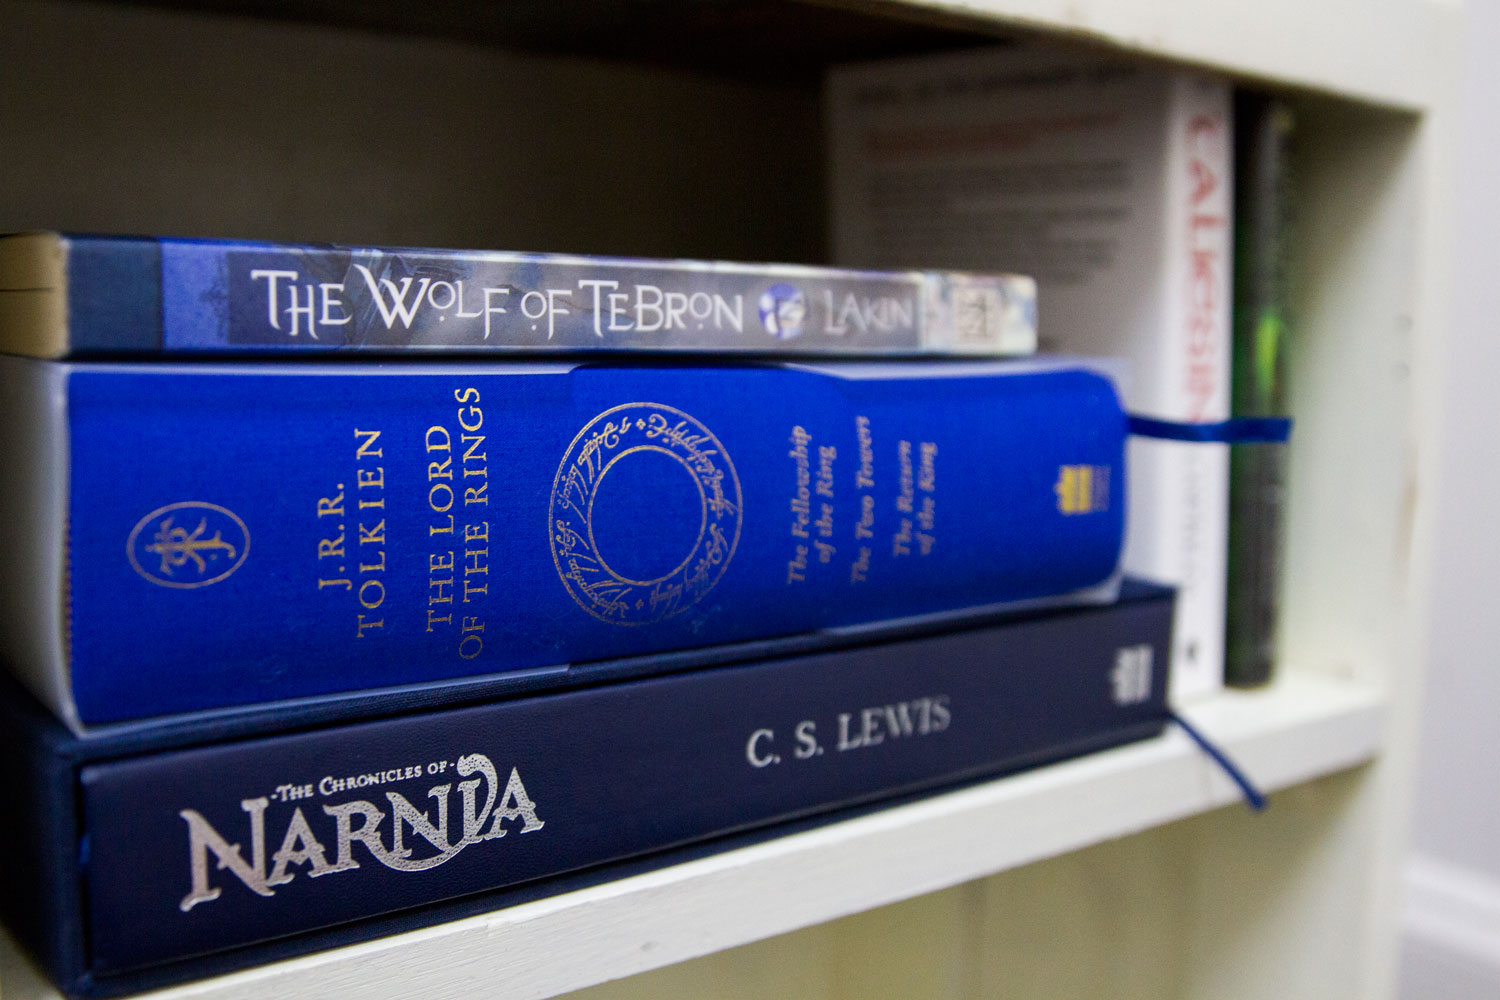 The Wolf of Tebron, The Lord of the Rings, Narnia books in vintage bookshelf.